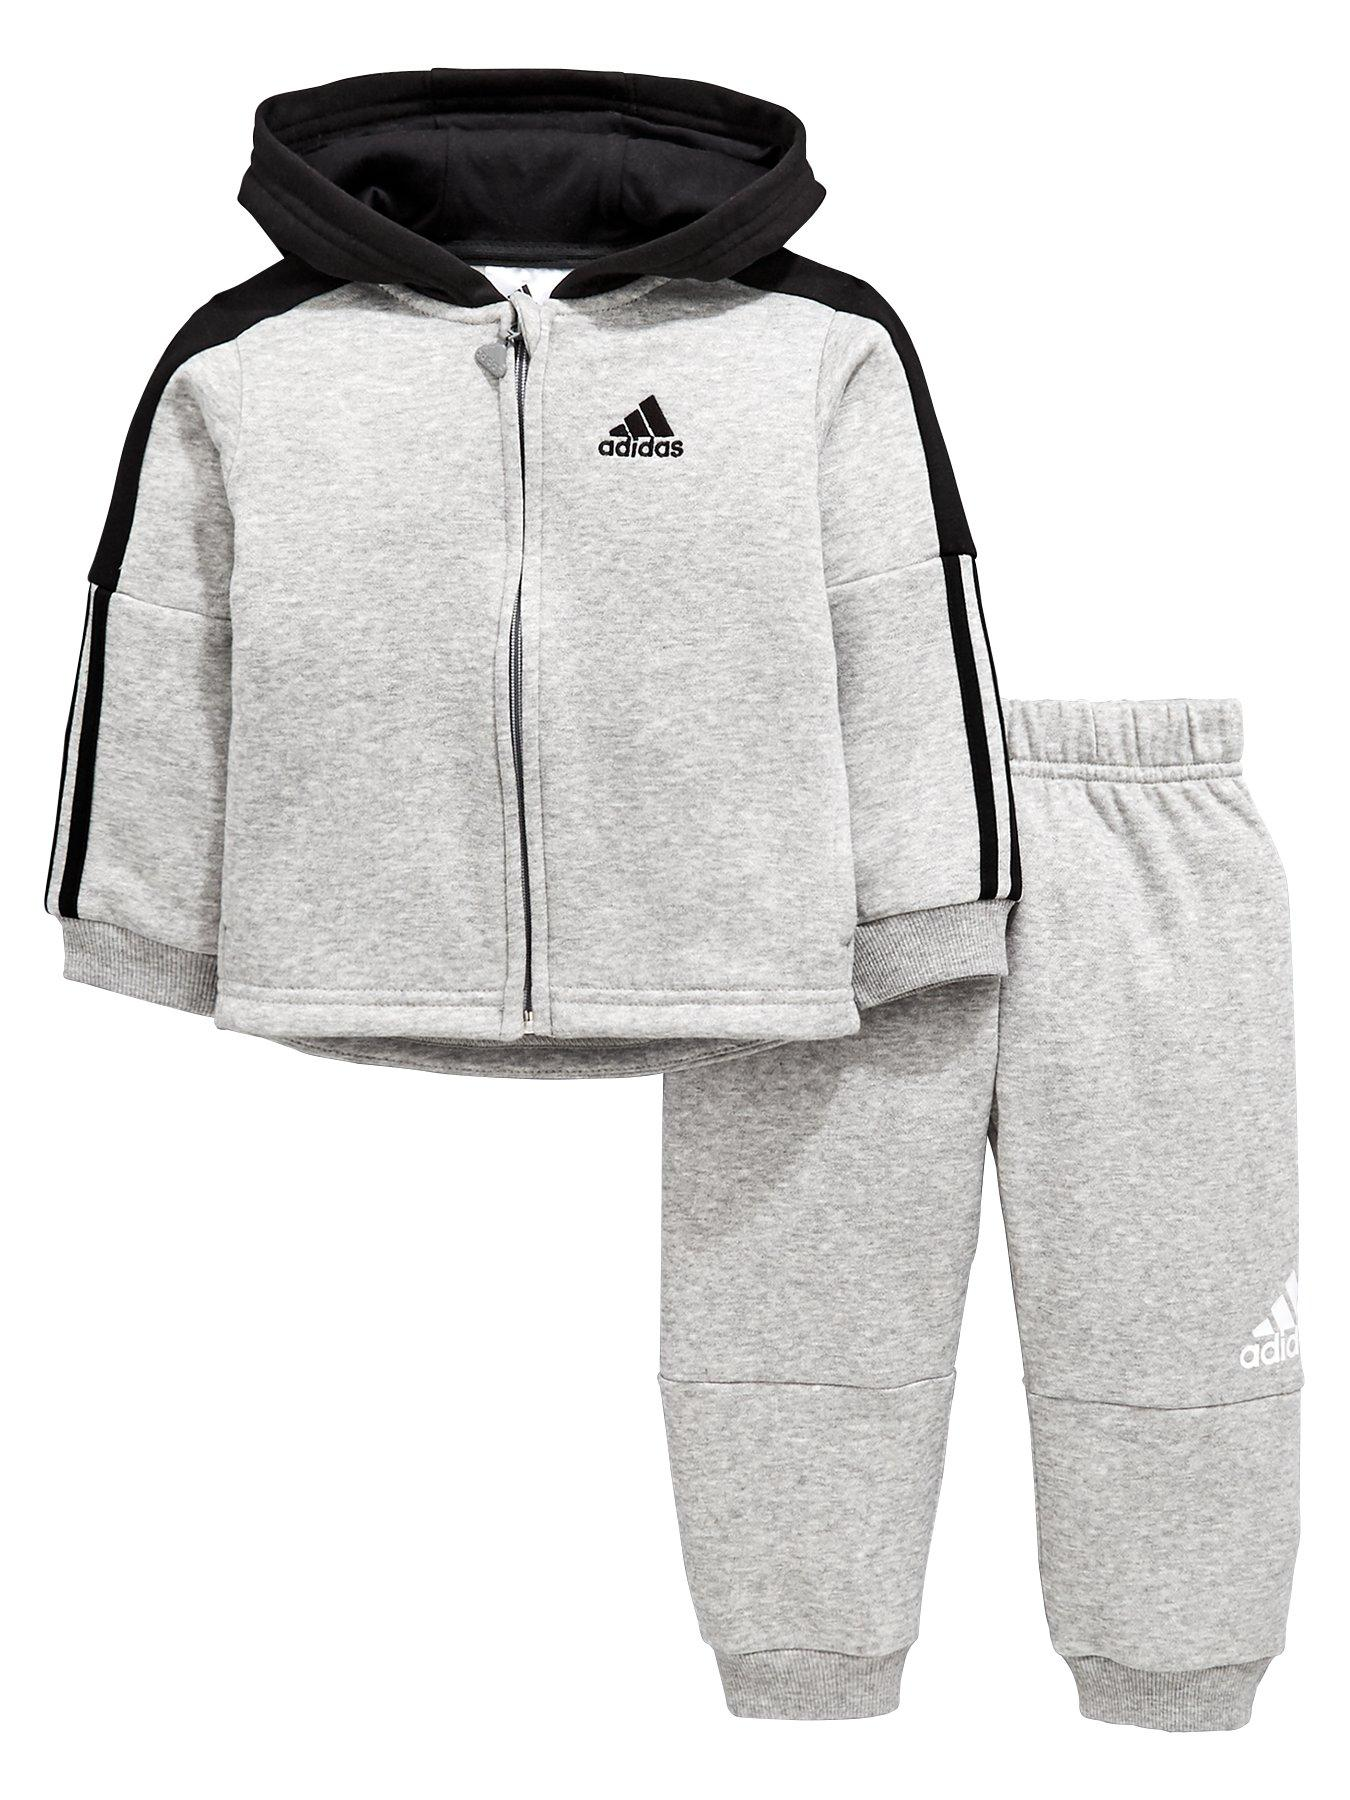 adidas Originals Unisex Baby Shiny Full Zip Hooded Tracksuit e613dd3dbd